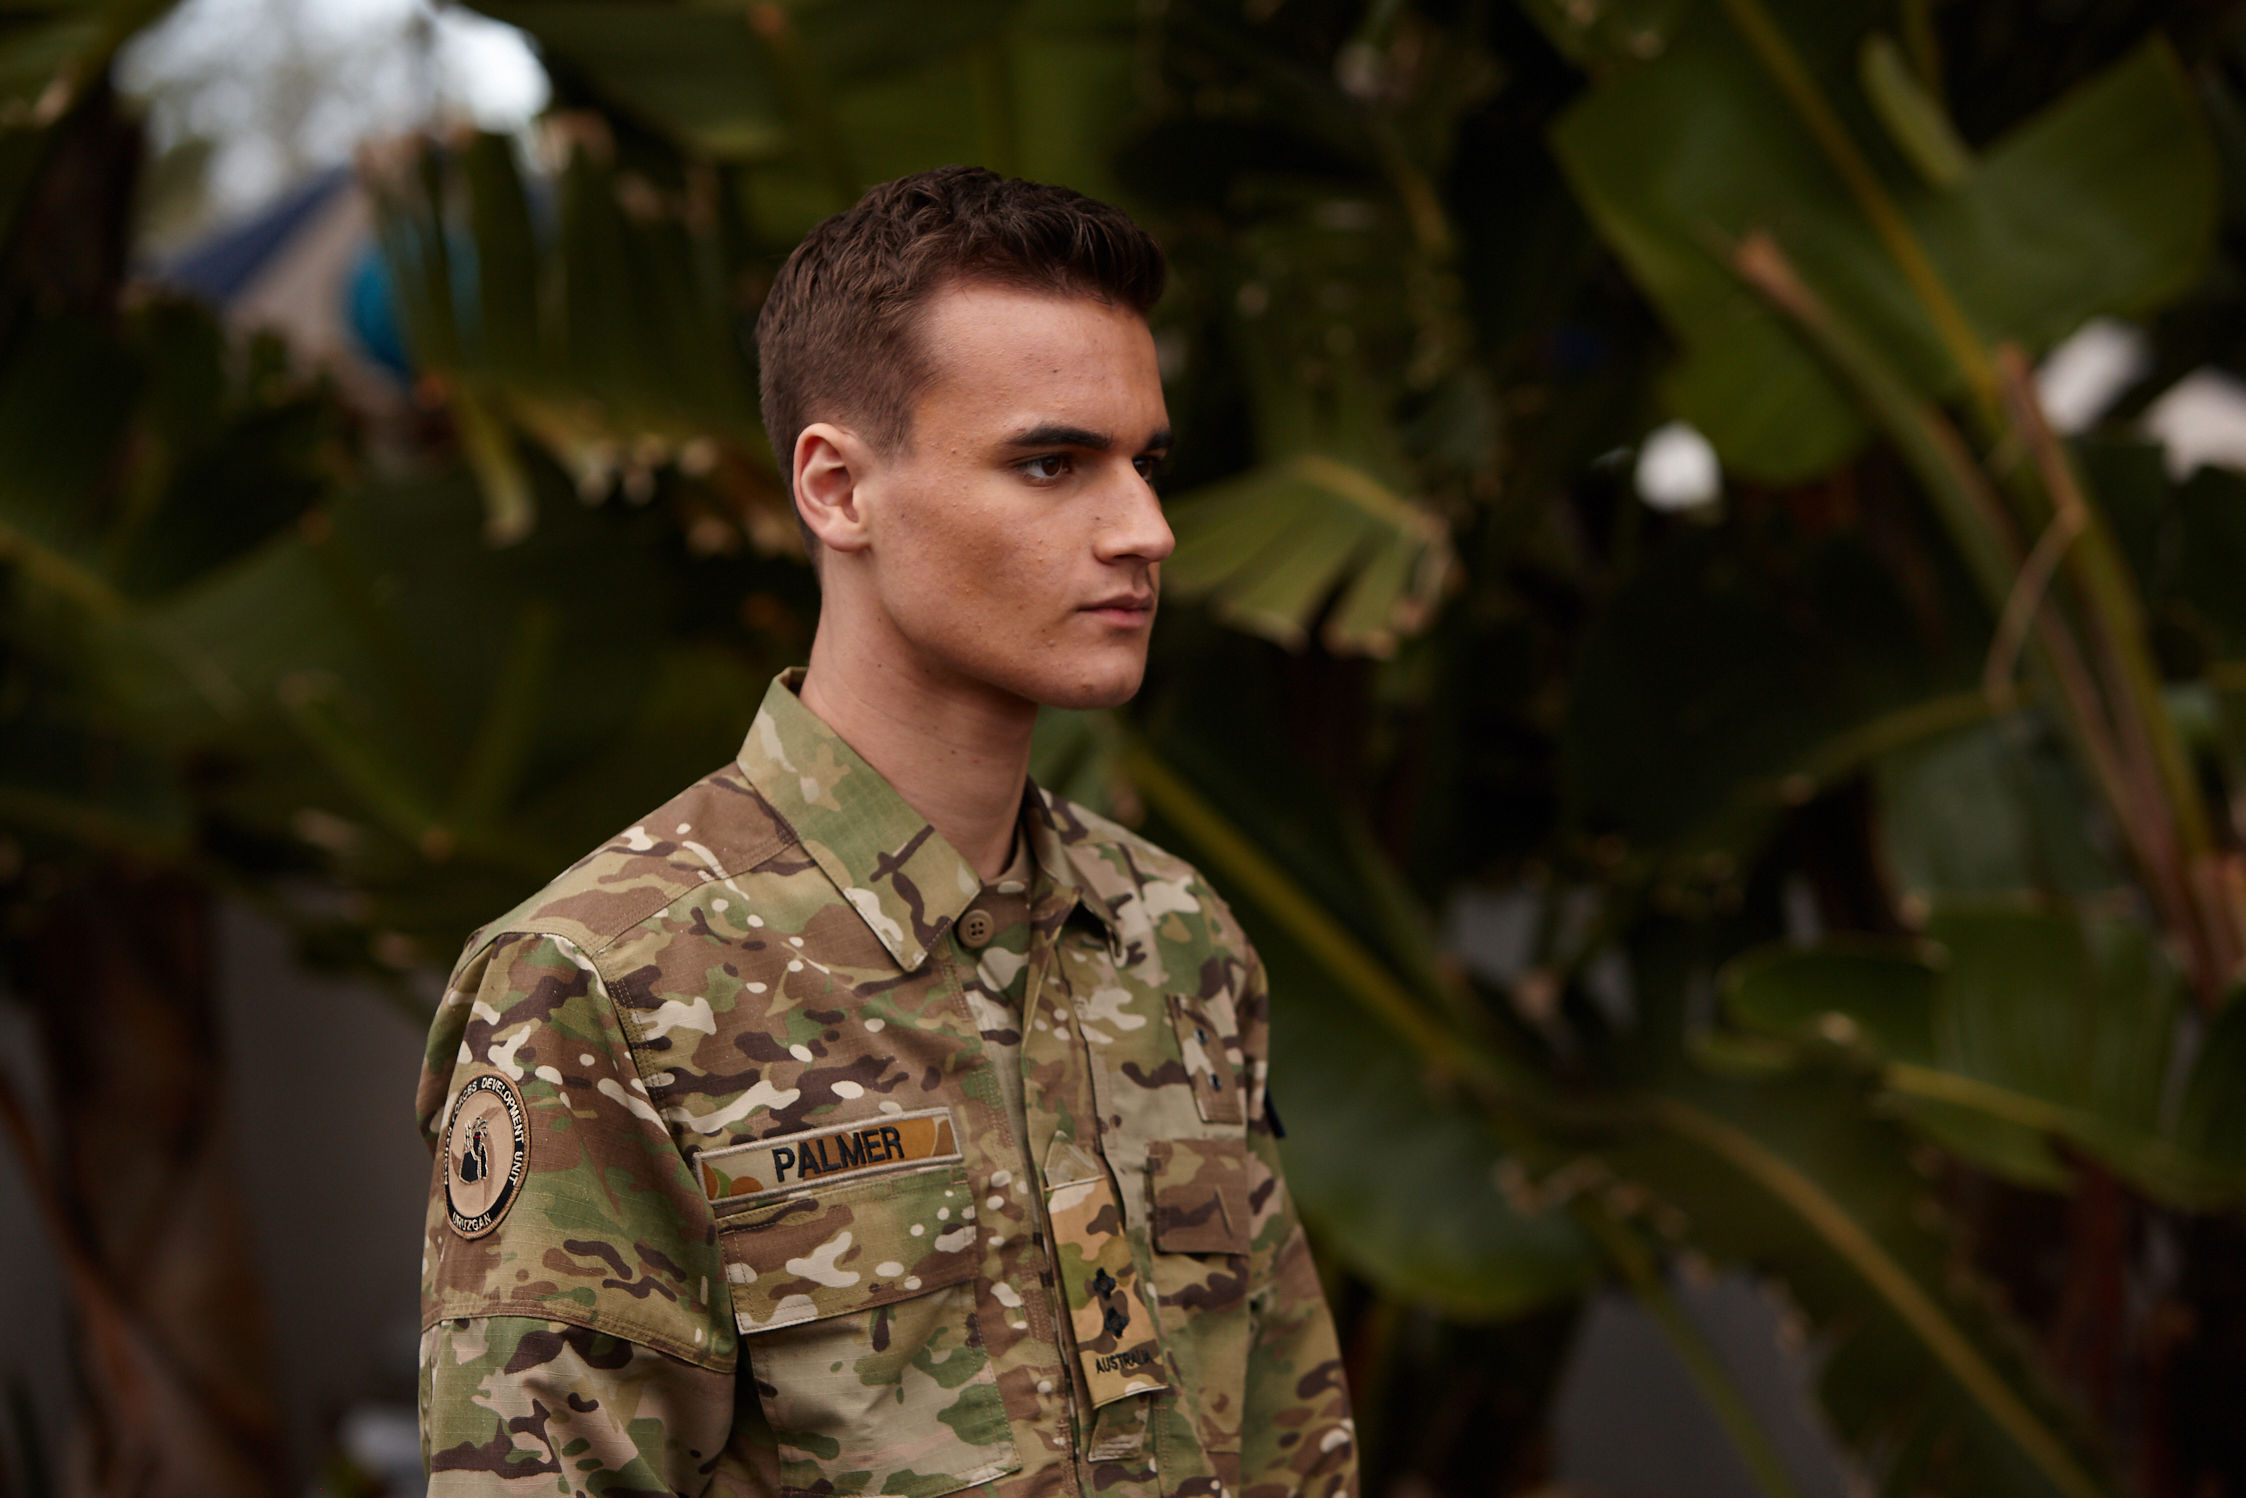 Home and Away spoilers: Jett returns to Summer Bay with life-changing injuries